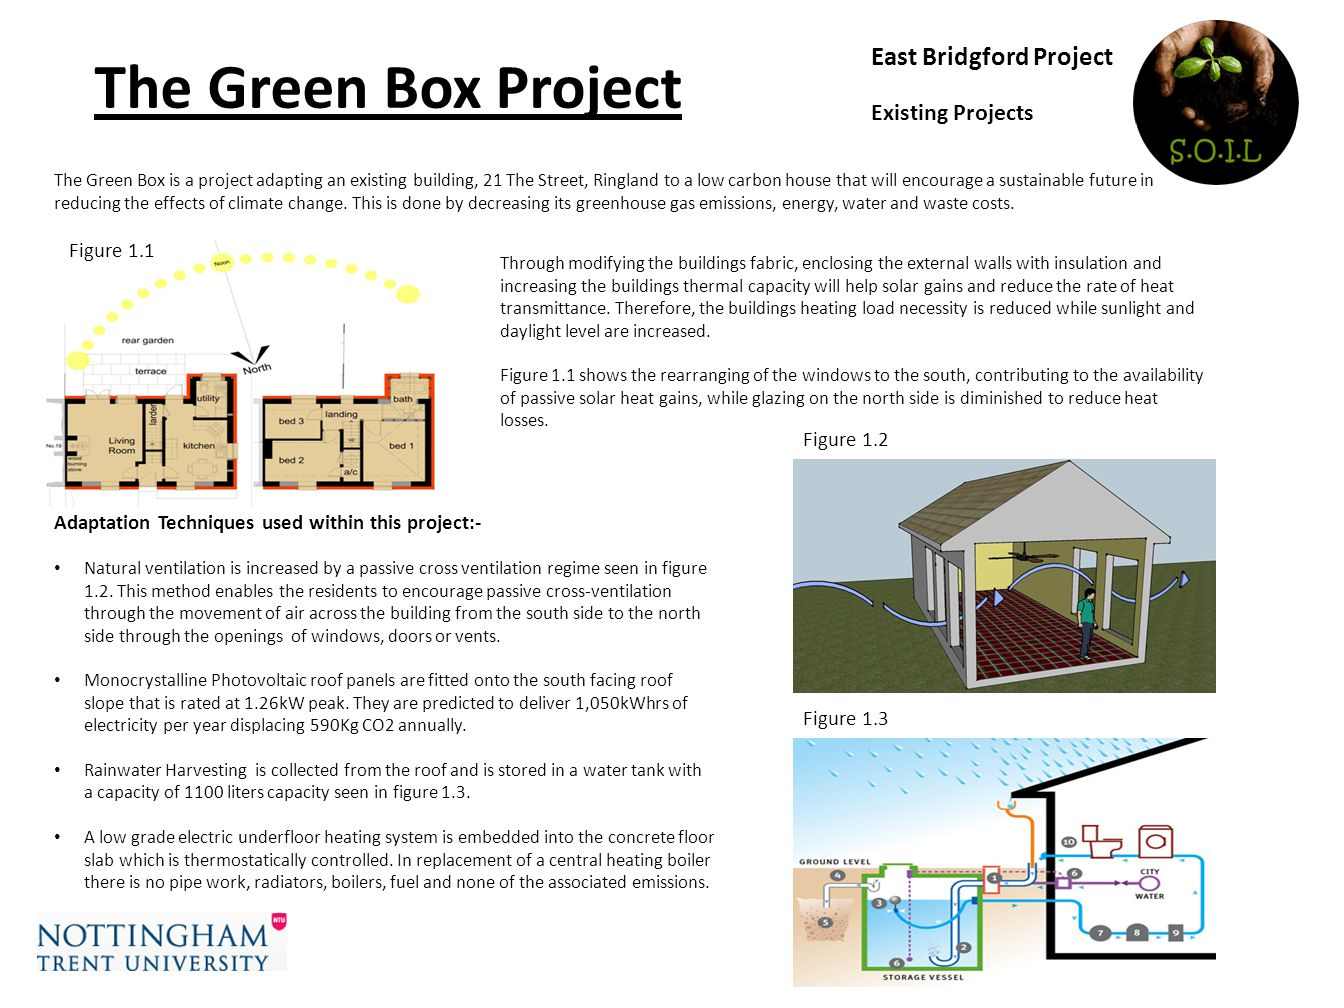 East Bridgford Project Existing Projects The Green Box Project Adaptation Techniques used within this project:- Natural ventilation is increased by a passive cross ventilation regime seen in figure 1.2.